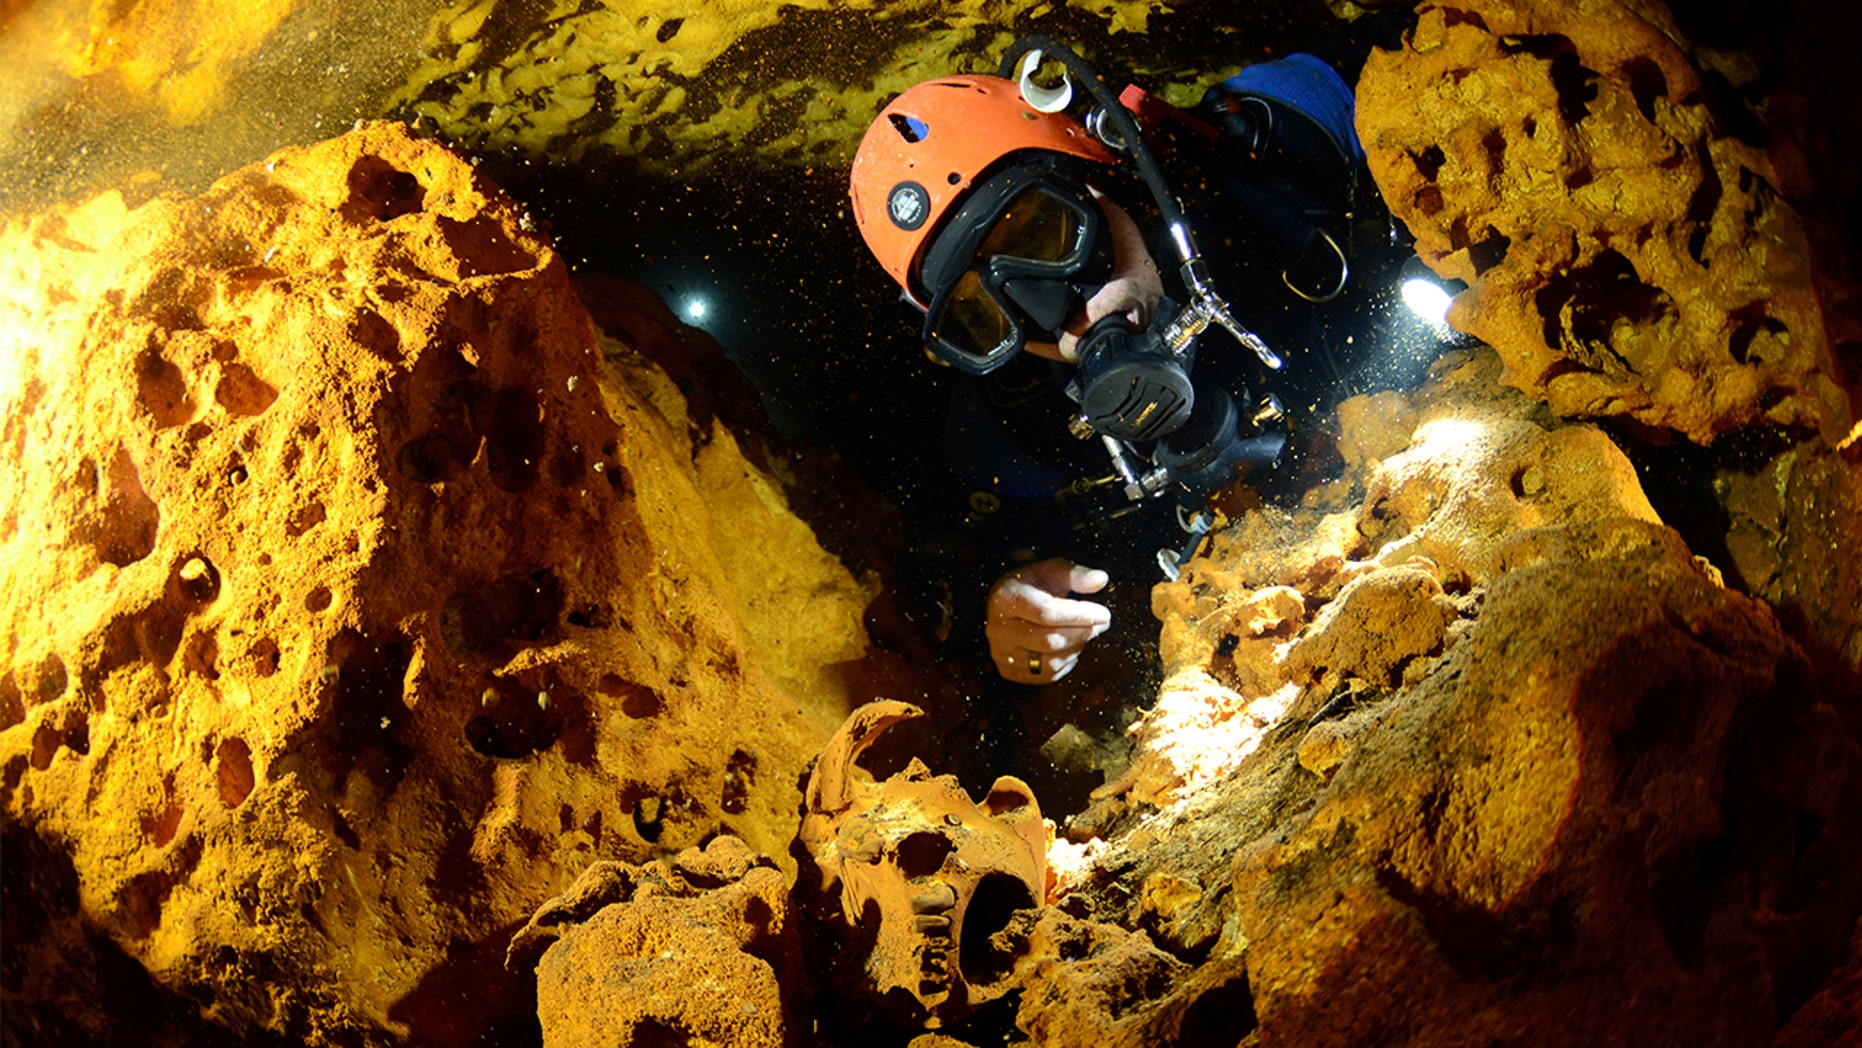 A scuba diver looks at an animal skull at Sac Aktun underwater cave system during exploration as part of the Gran Acuifero Maya Project near Tulum, in Quintana Roo state, Mexico February 12, 2014. (Jan Arild Aaserud/Courtesy Gran Acuifero Maya Project [GAM]/Handout via REUTERS)